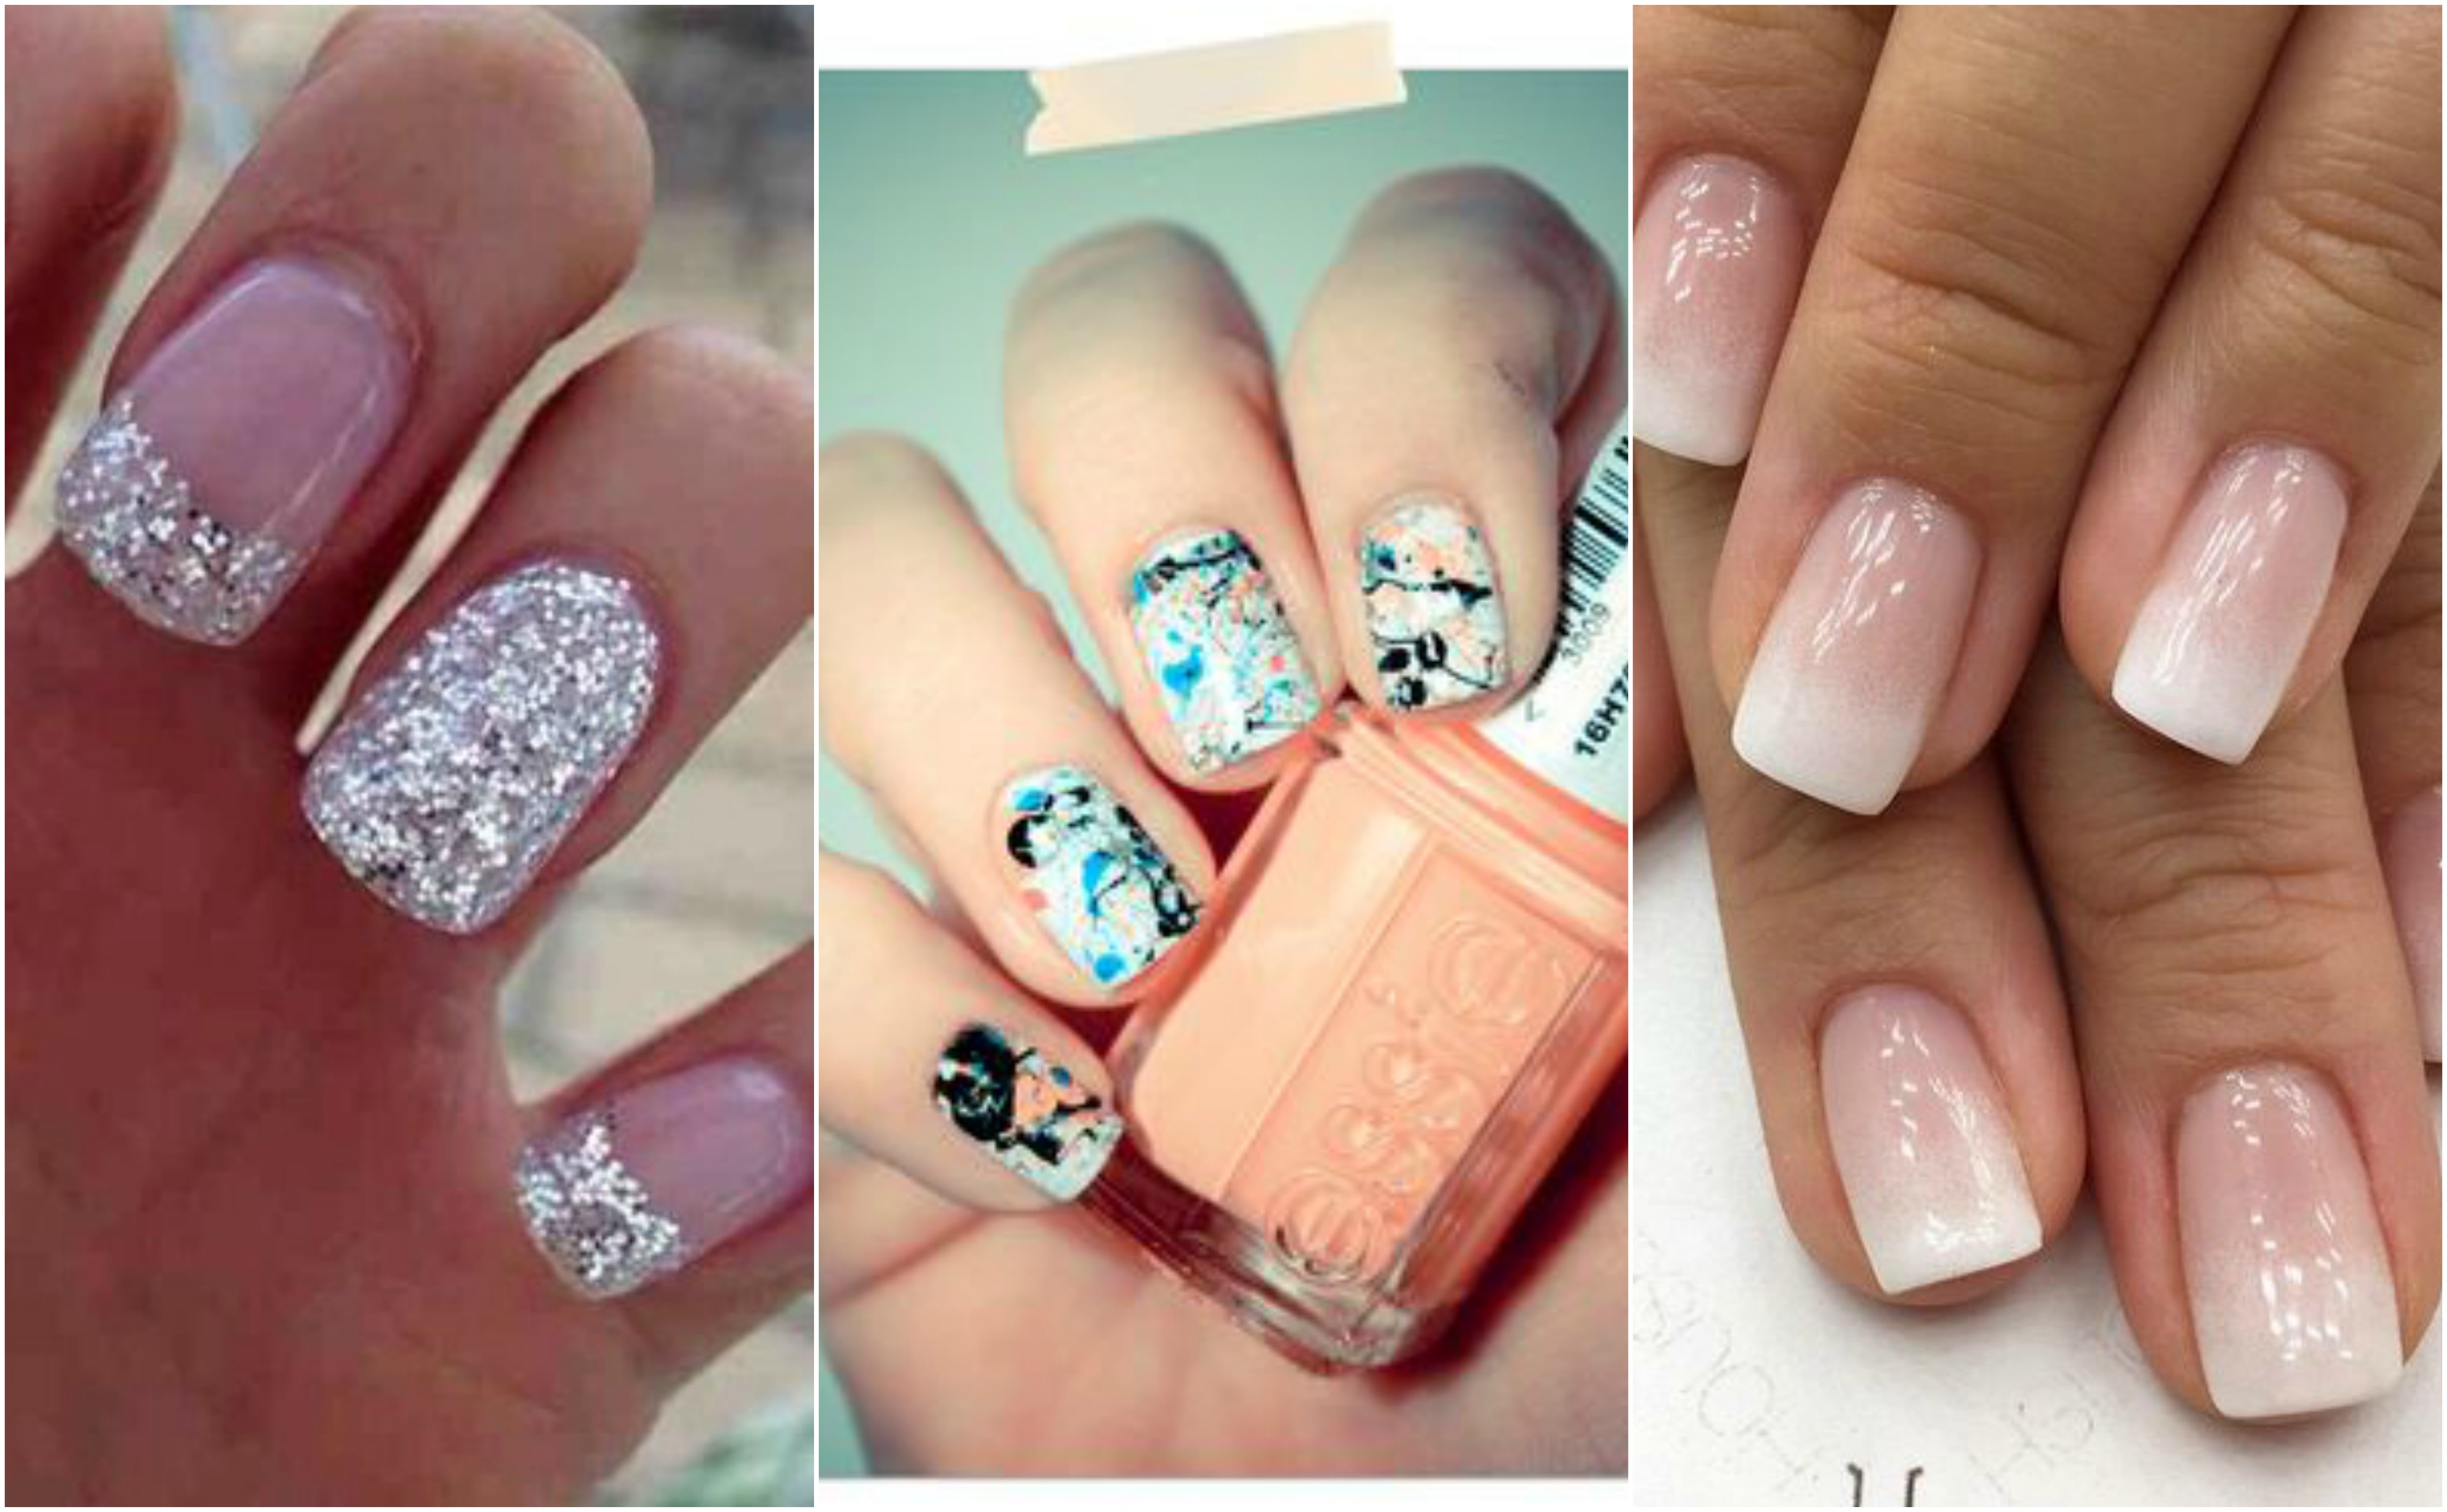 Creative Nail Design Posters: Acrylic nail posters polishes on ...